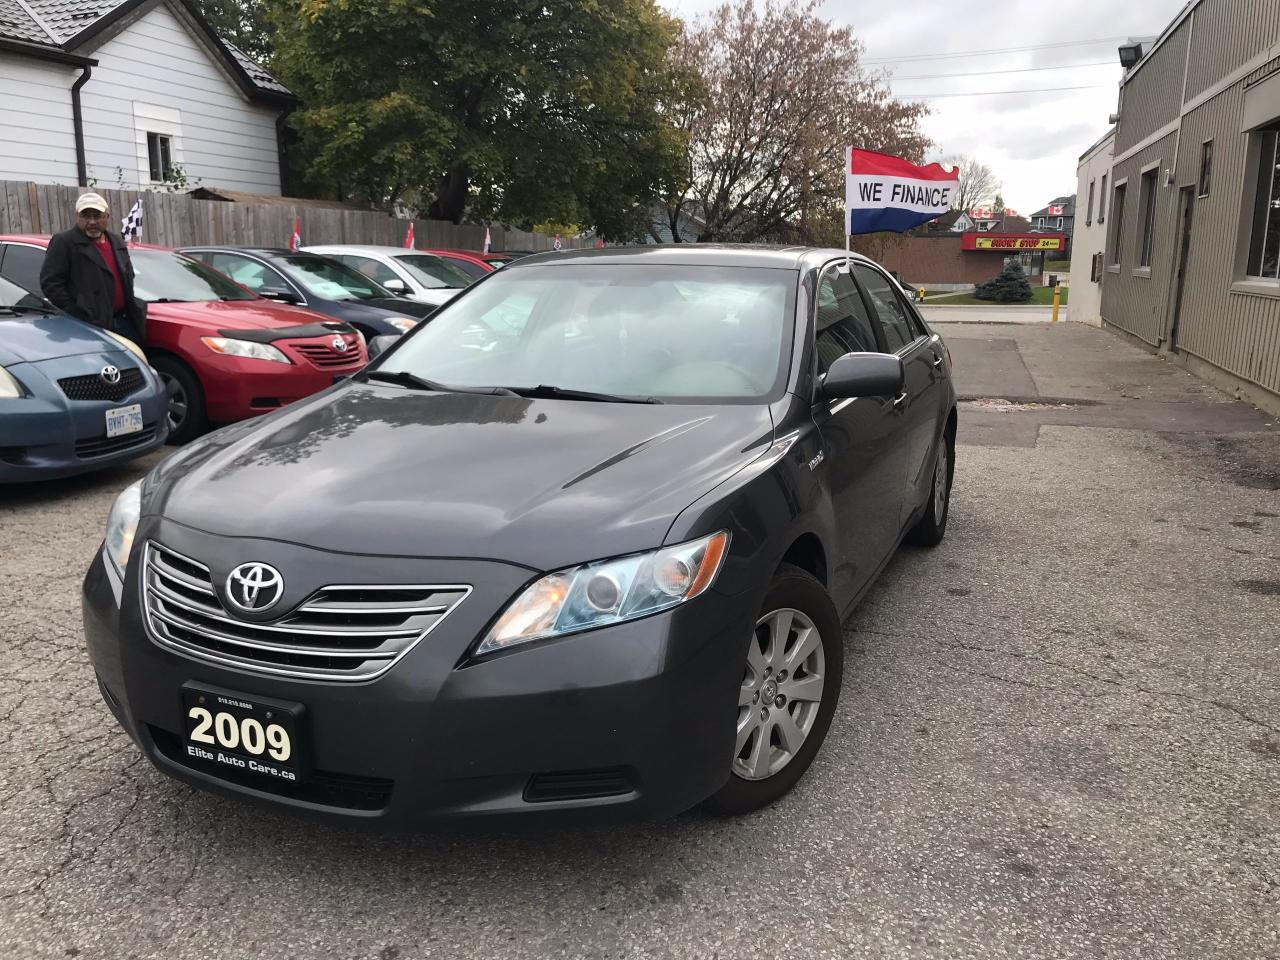 Used 2009 Toyota Camry Hybrid For Sale In Cambridge